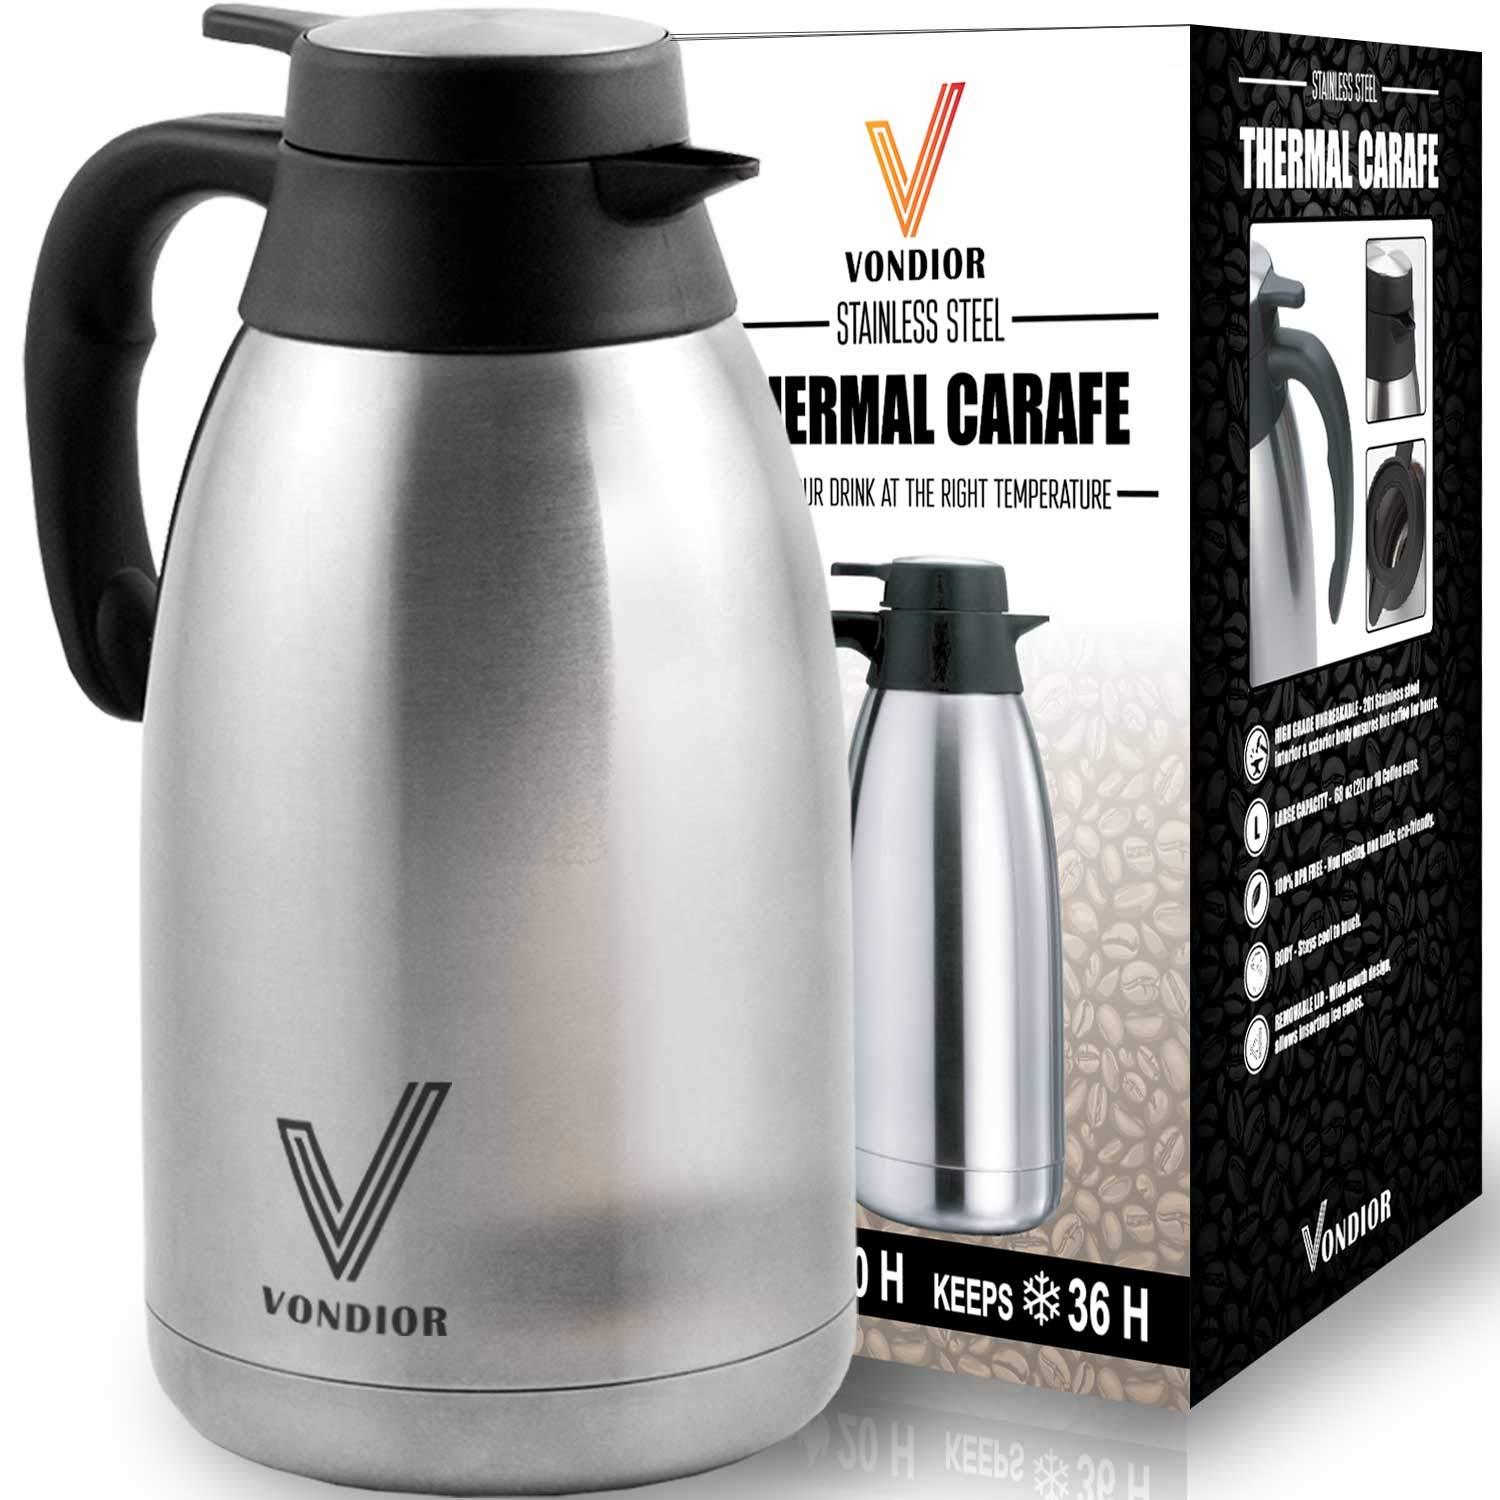 Coffee Thermal Carafe (68 Oz) + Free Brush - Large Stainless Steel Thermos carafes, Keep Water hot up to 12 Hours, Double Walled Insulated Vacuum Flask, Beverage Dispenser by Vondior